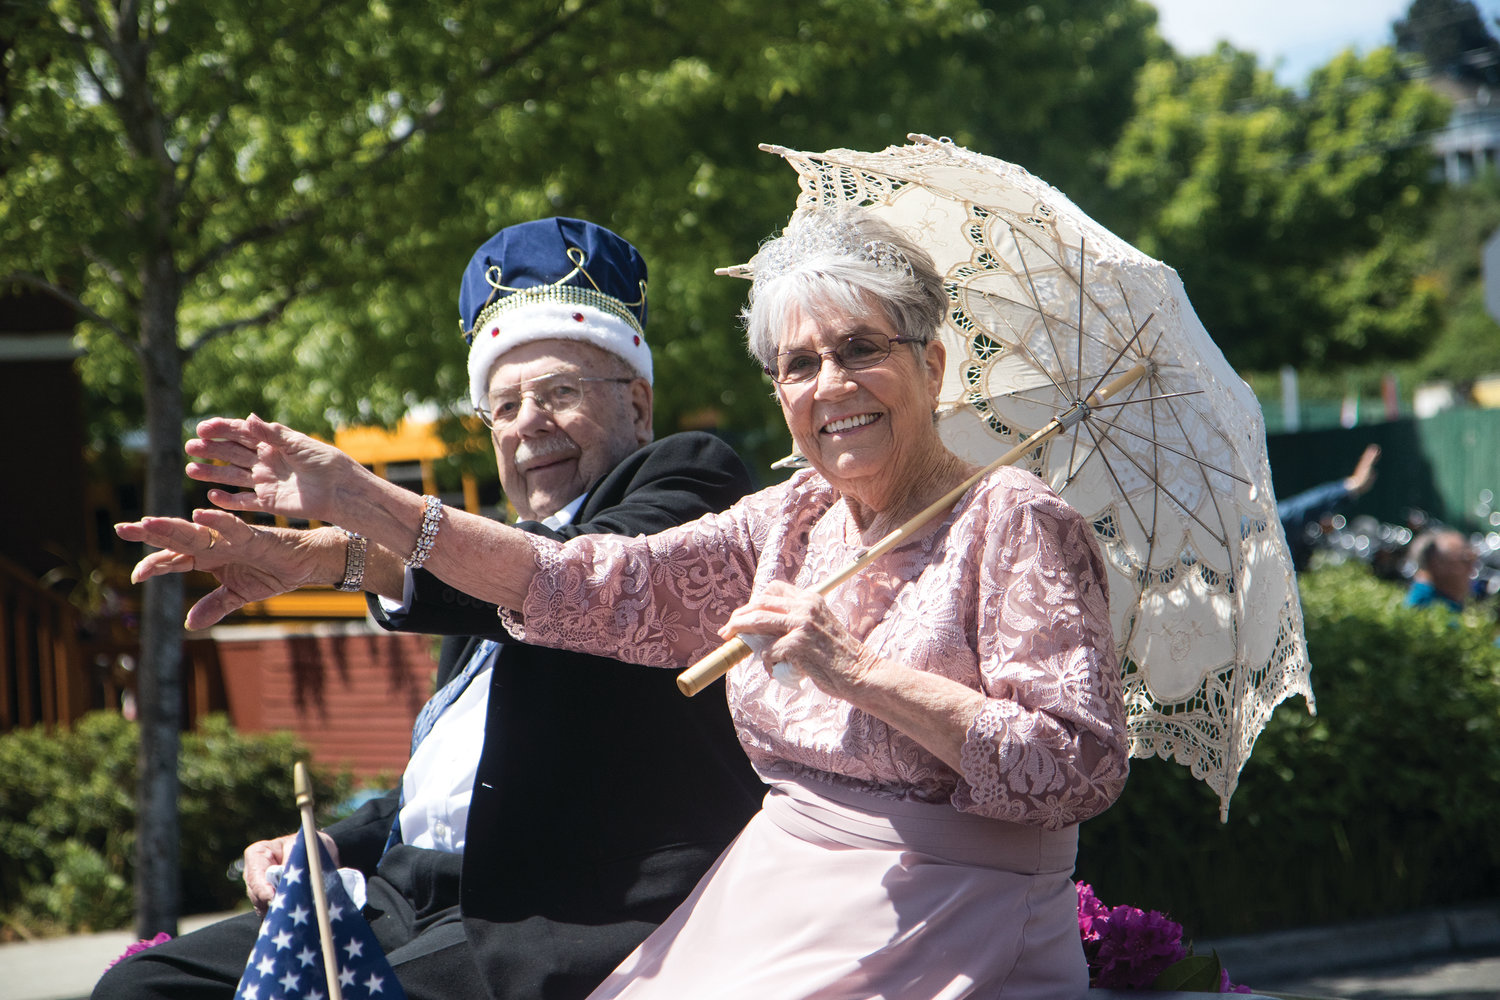 King Curt Russ and Queen Betty Grewell wave to the crowd at the Grand Parade, May 18. Russ and Grewell represented the Senior Royalty for the Port Townsend Senior Association.